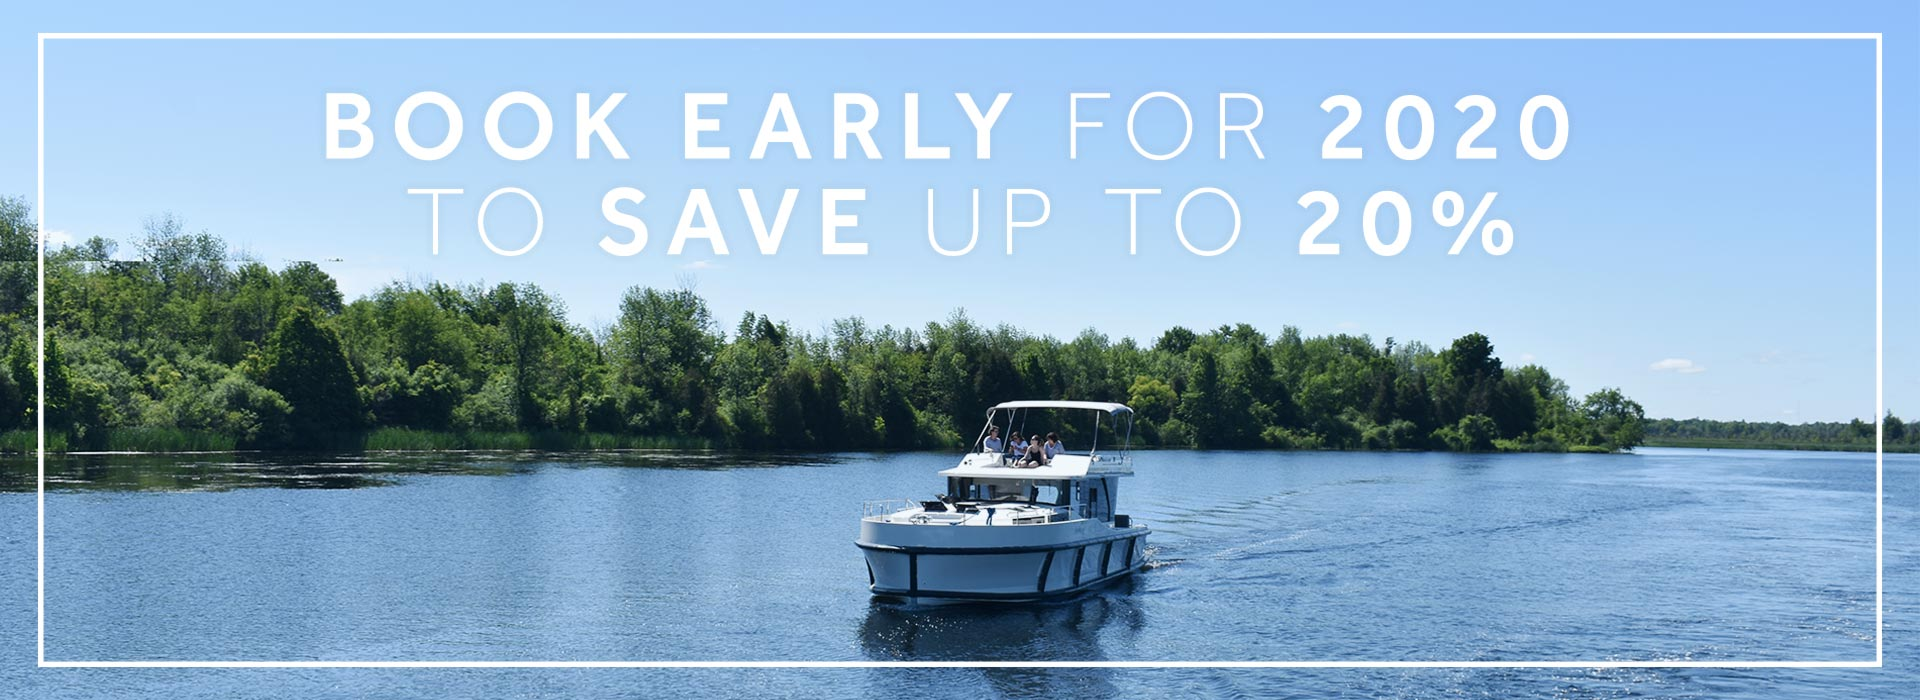 Le Boat - Book early for 2020 and save